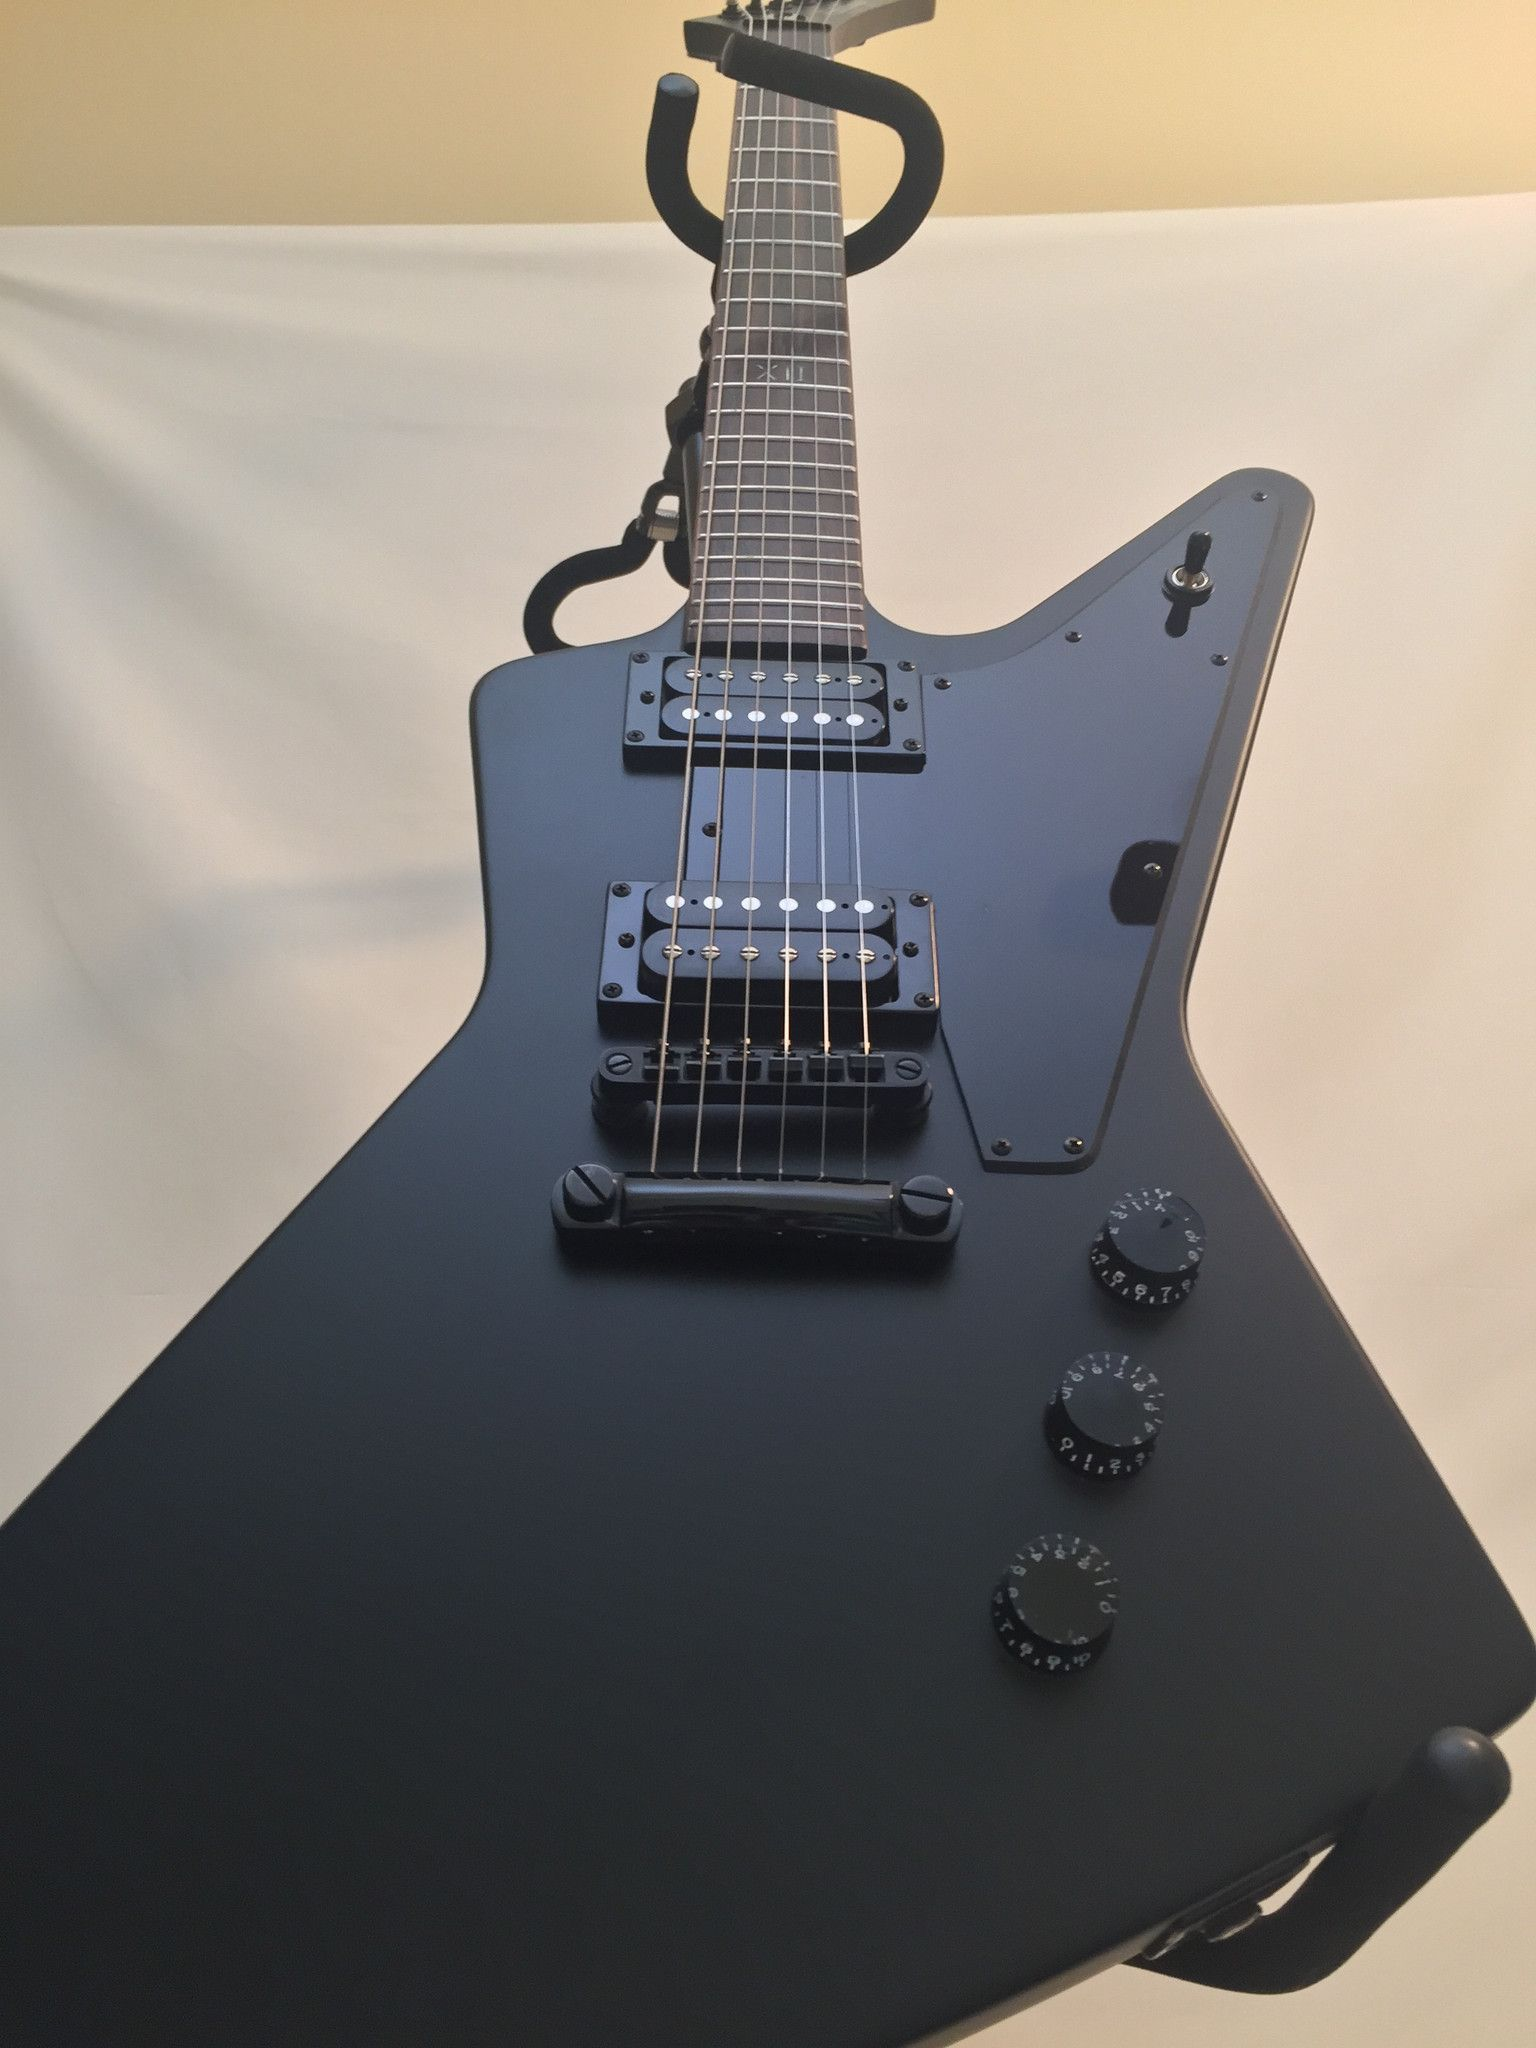 Epiphone Goth 1958 Explorer Guitars Owners Manual Sg Special Wiring Schematic Mazda 626 Body Electrical